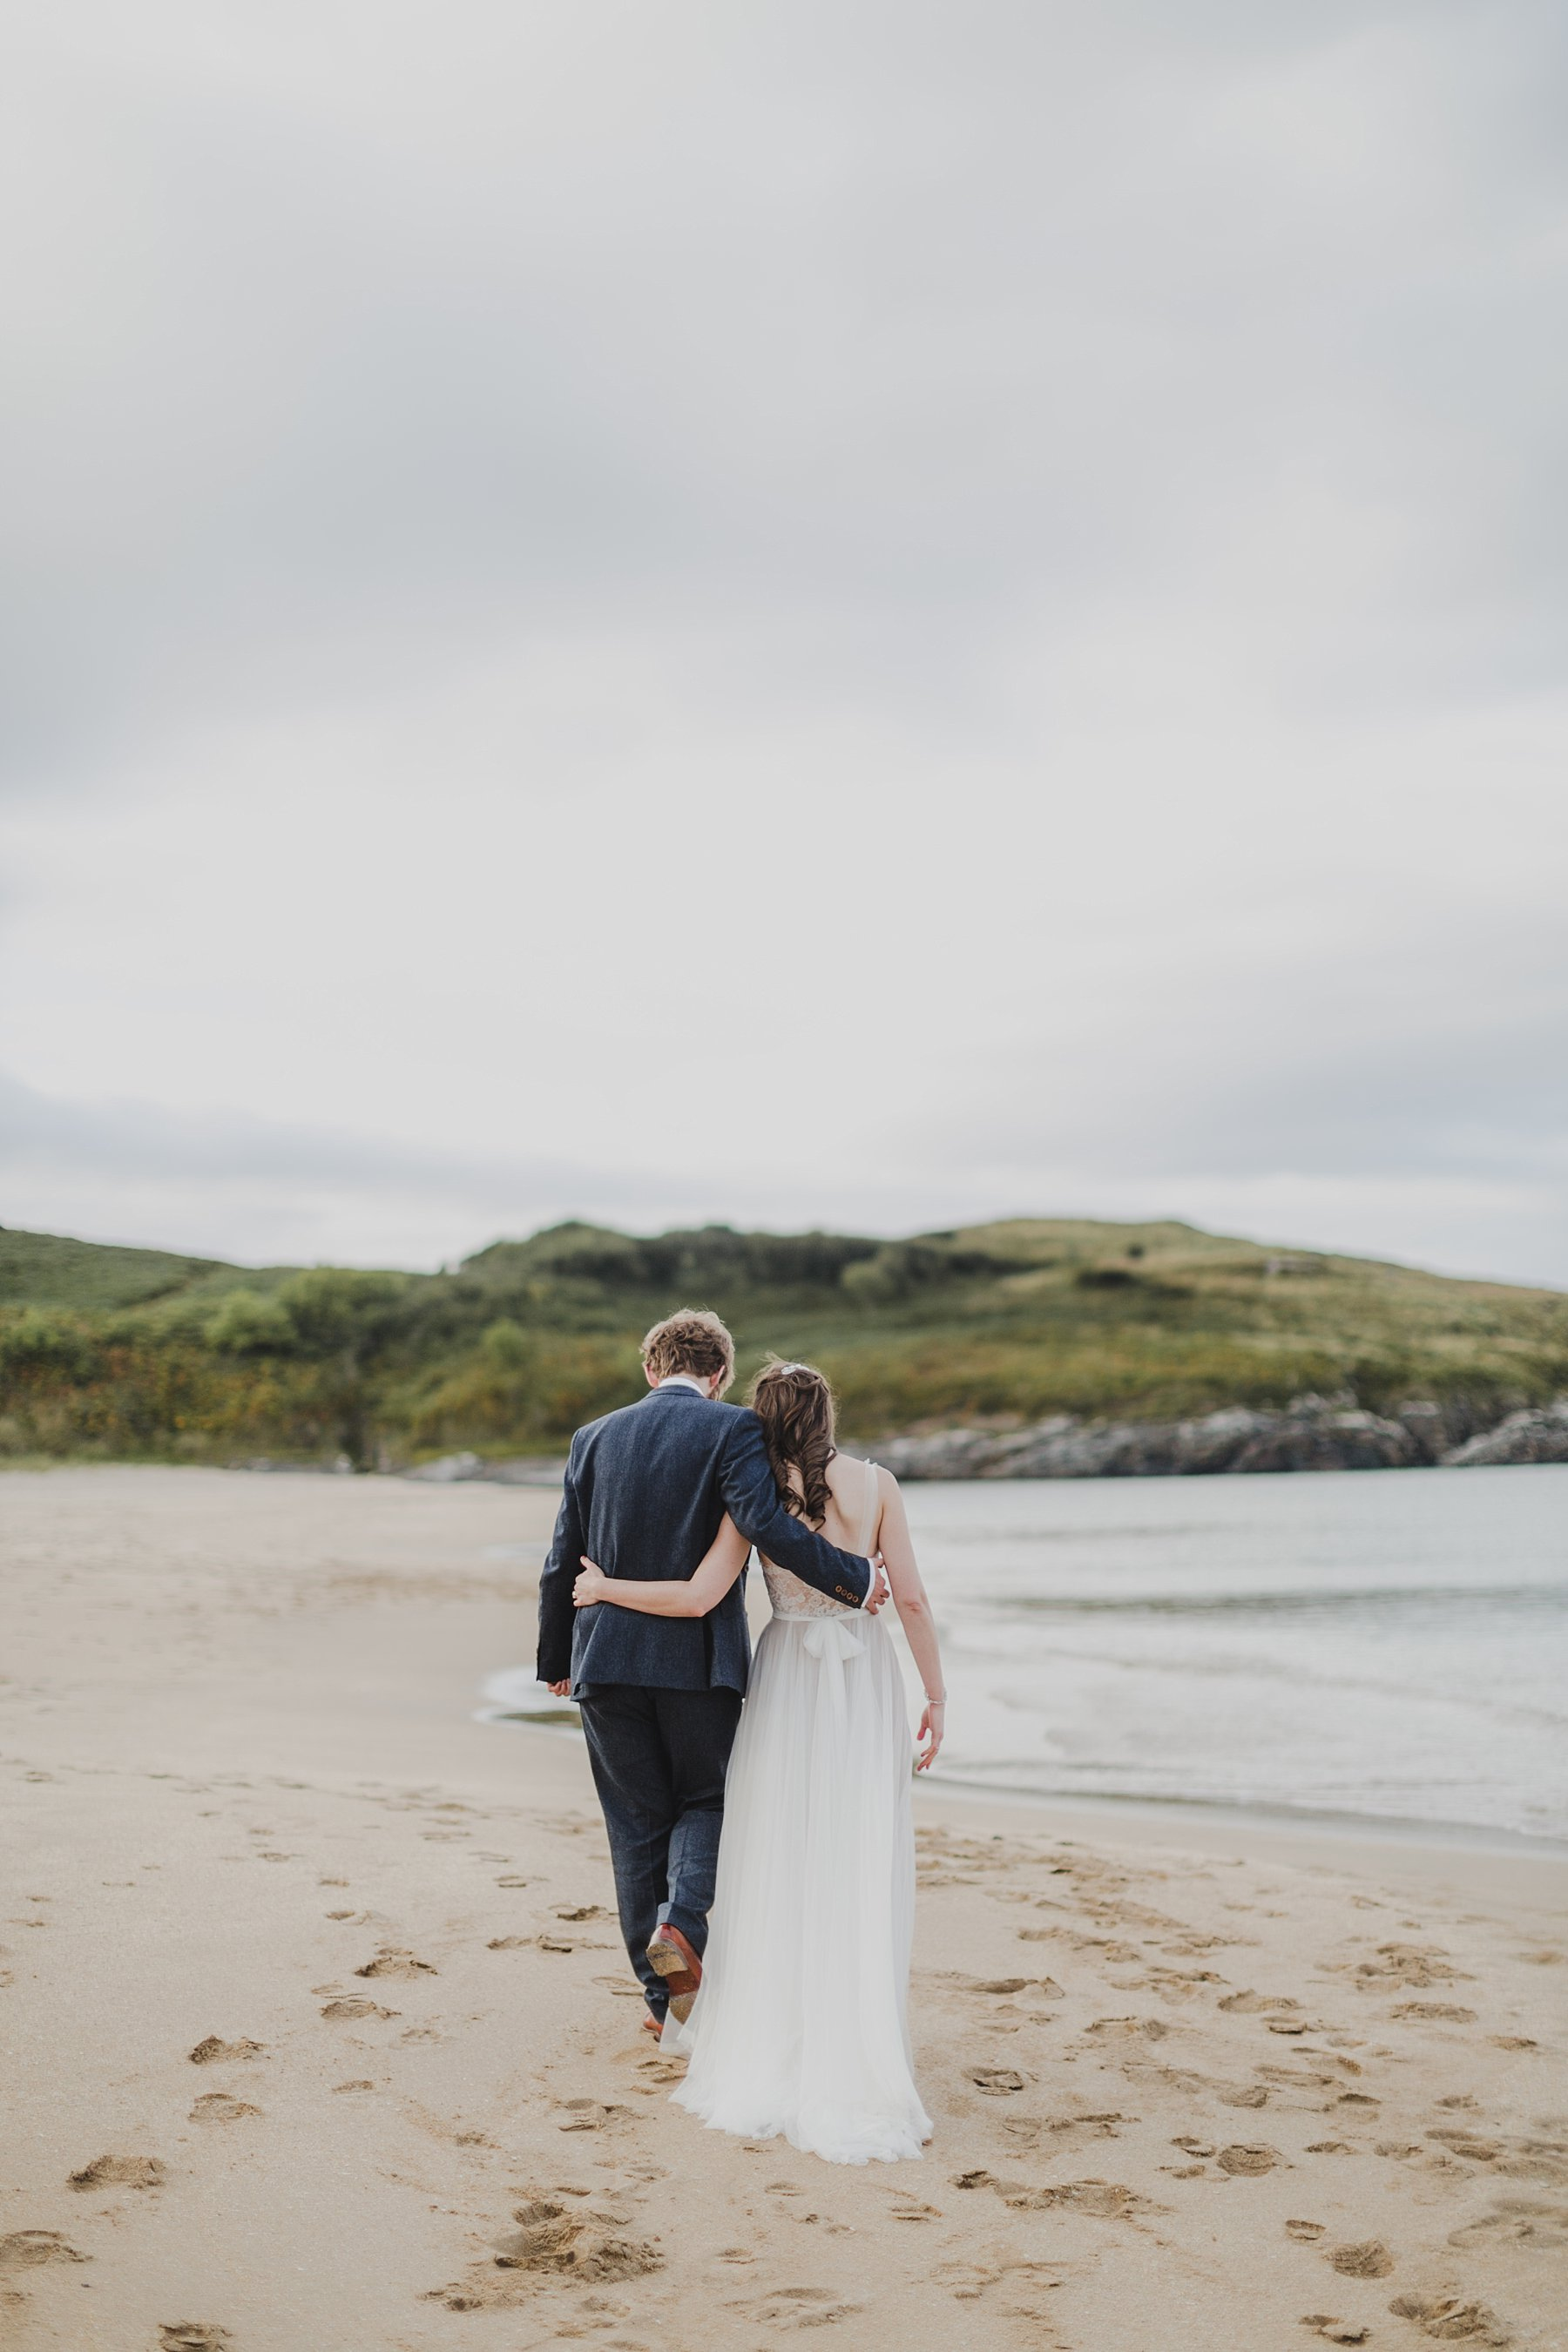 hornhead_donegak_elopement_weddings_0066